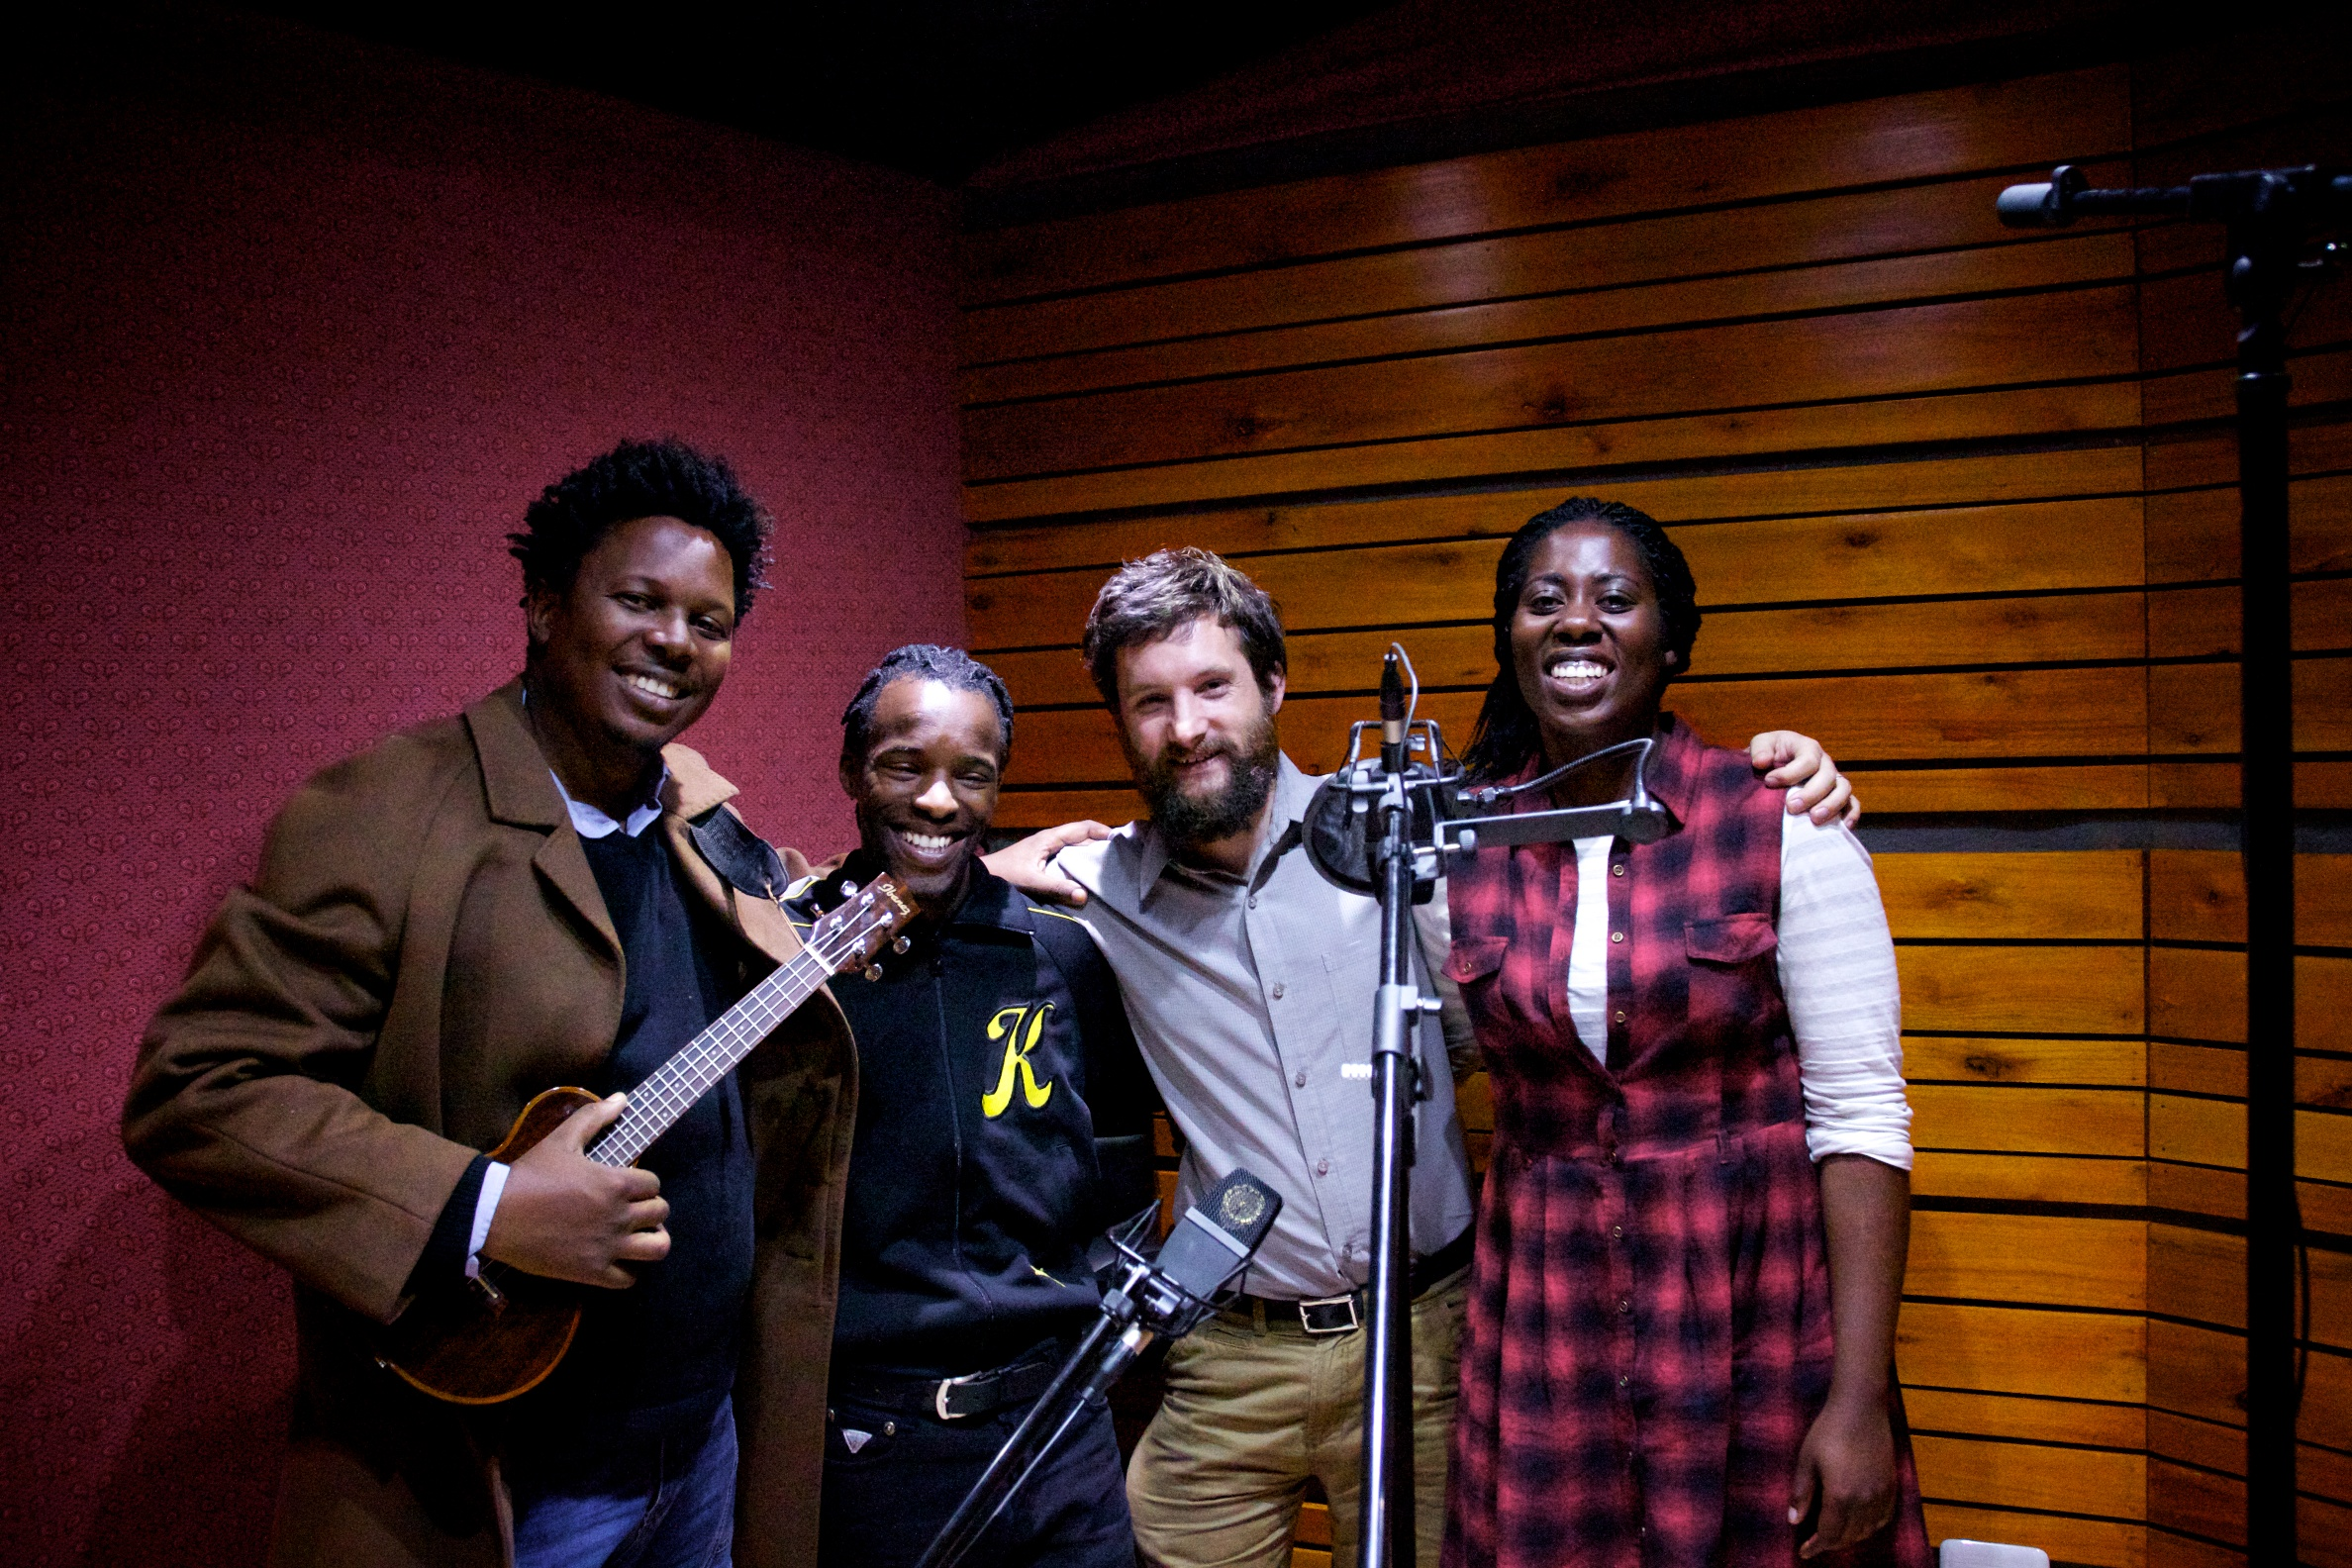 After the first tracking session with Bholoja and Velli.jpg